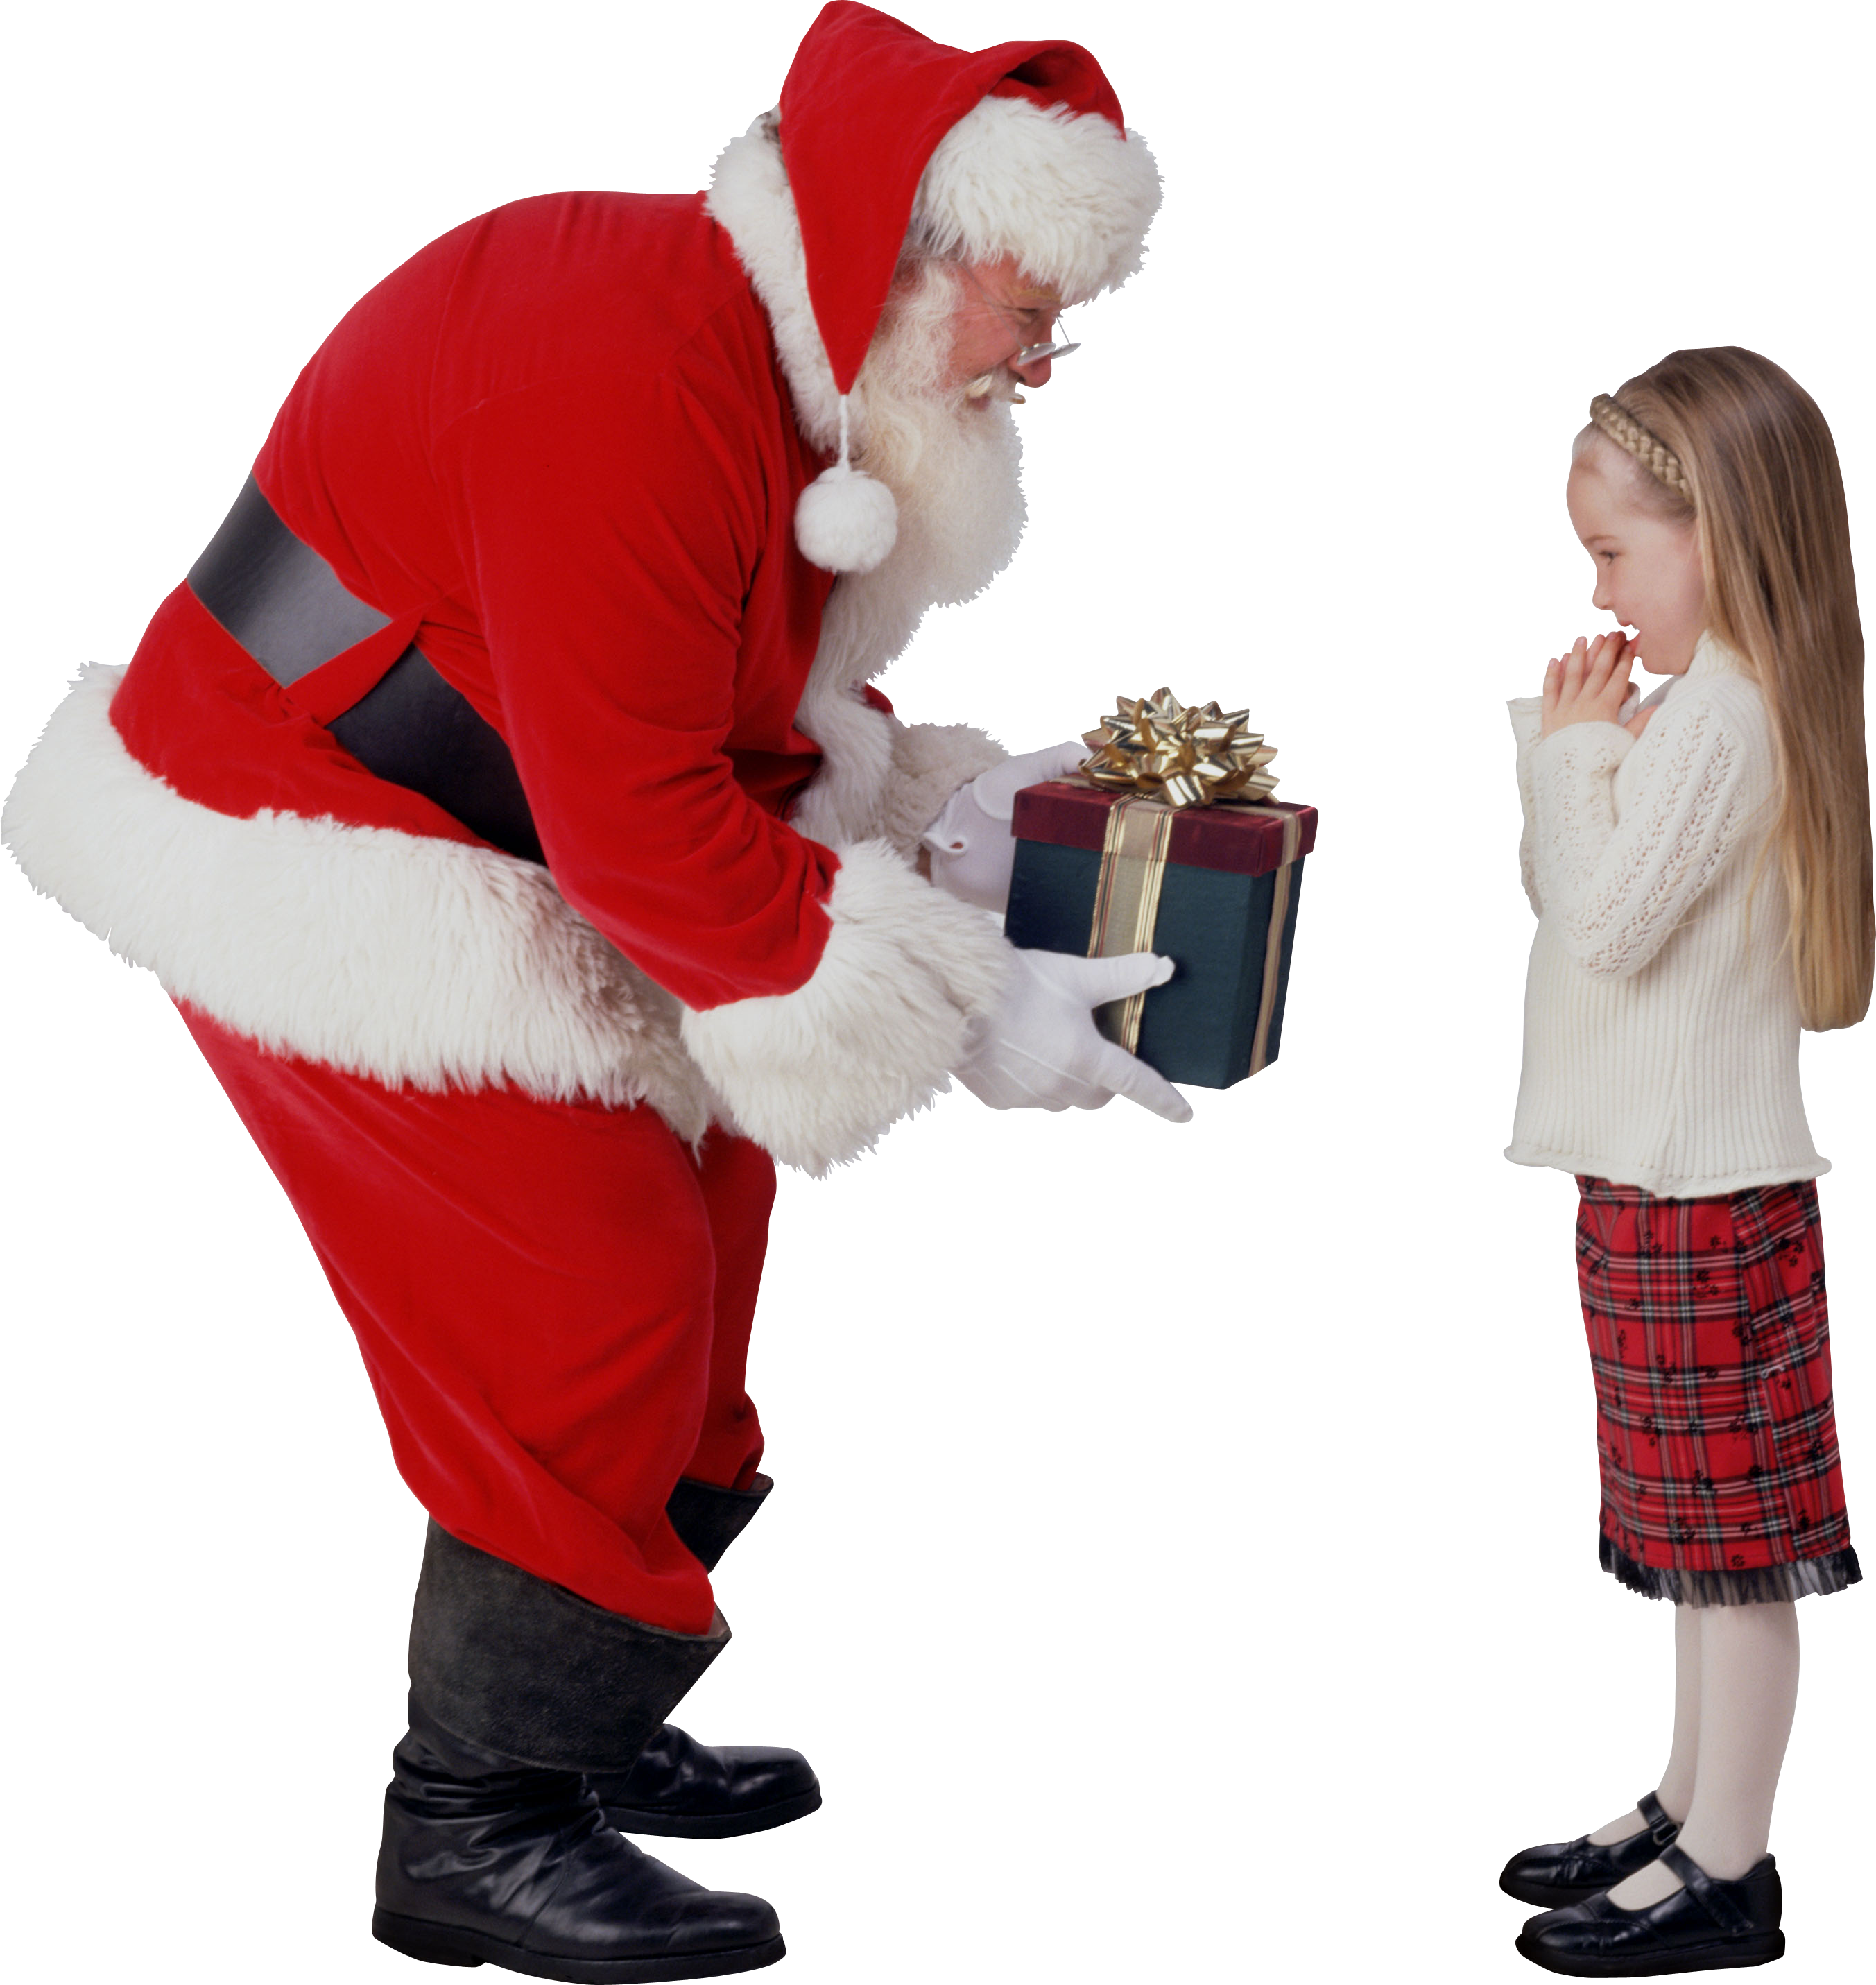 Santa giving a Gift to the child